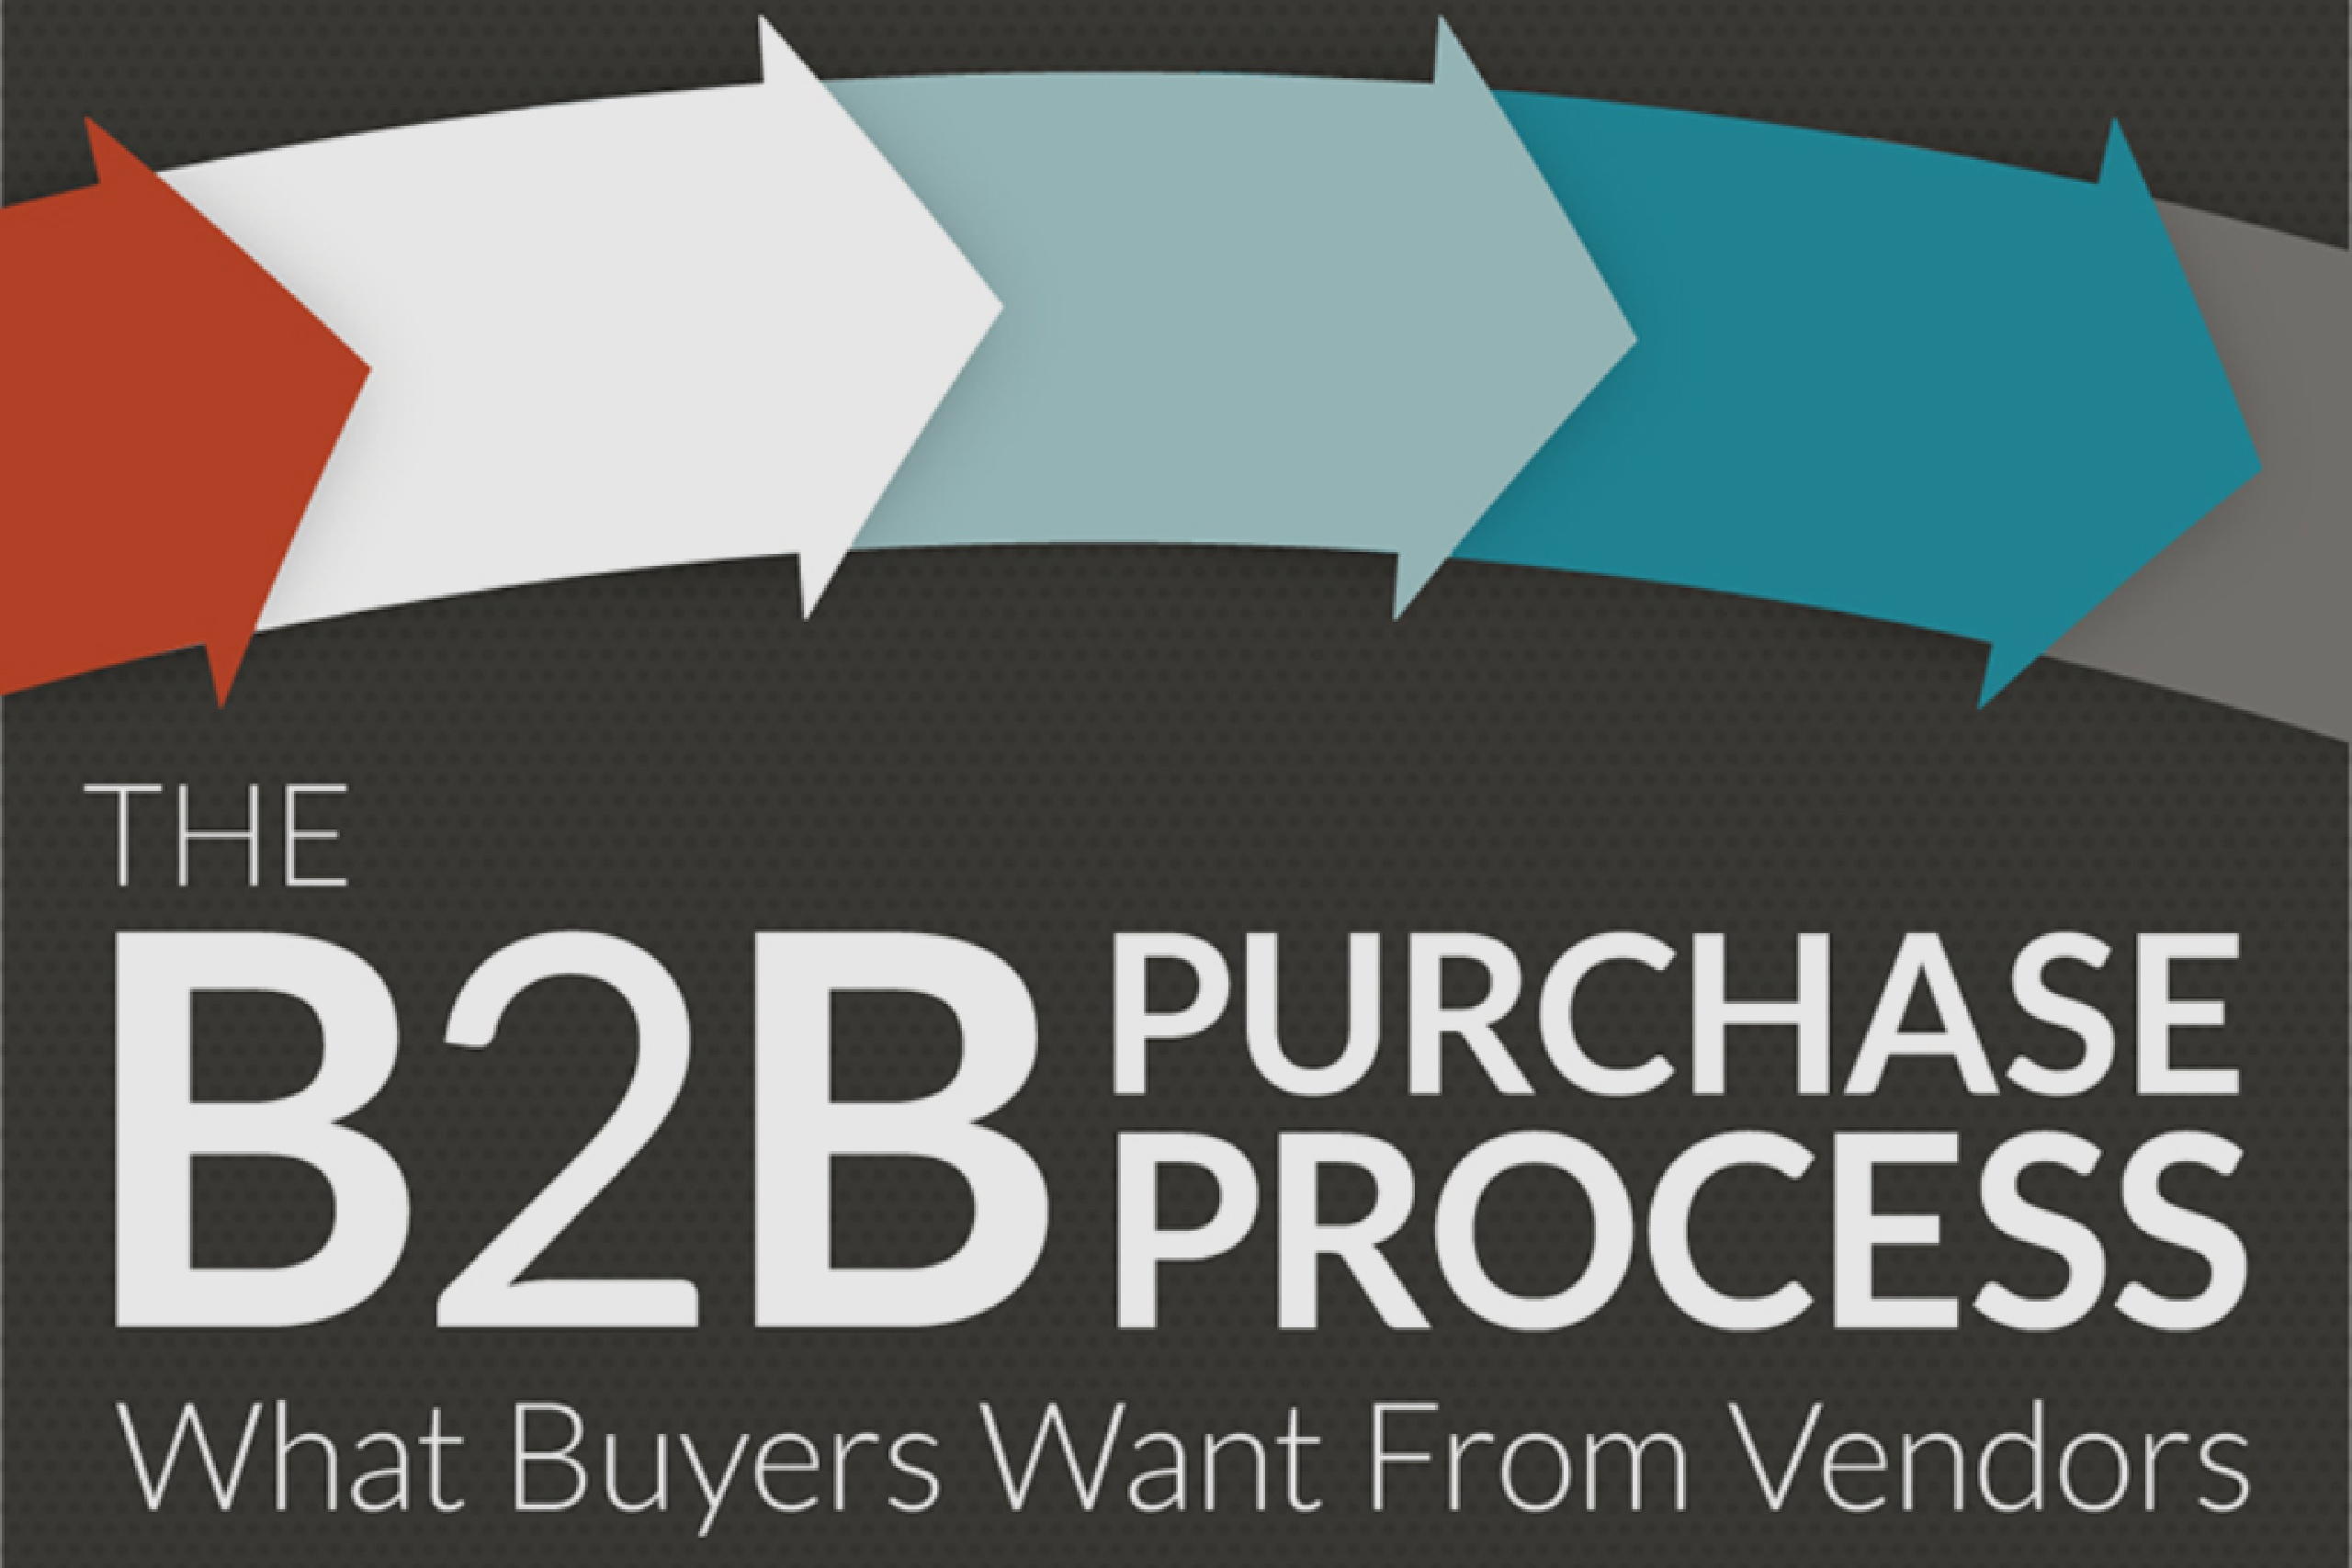 B2B Marketing Content What Buyers Want from Vendors (infographic)